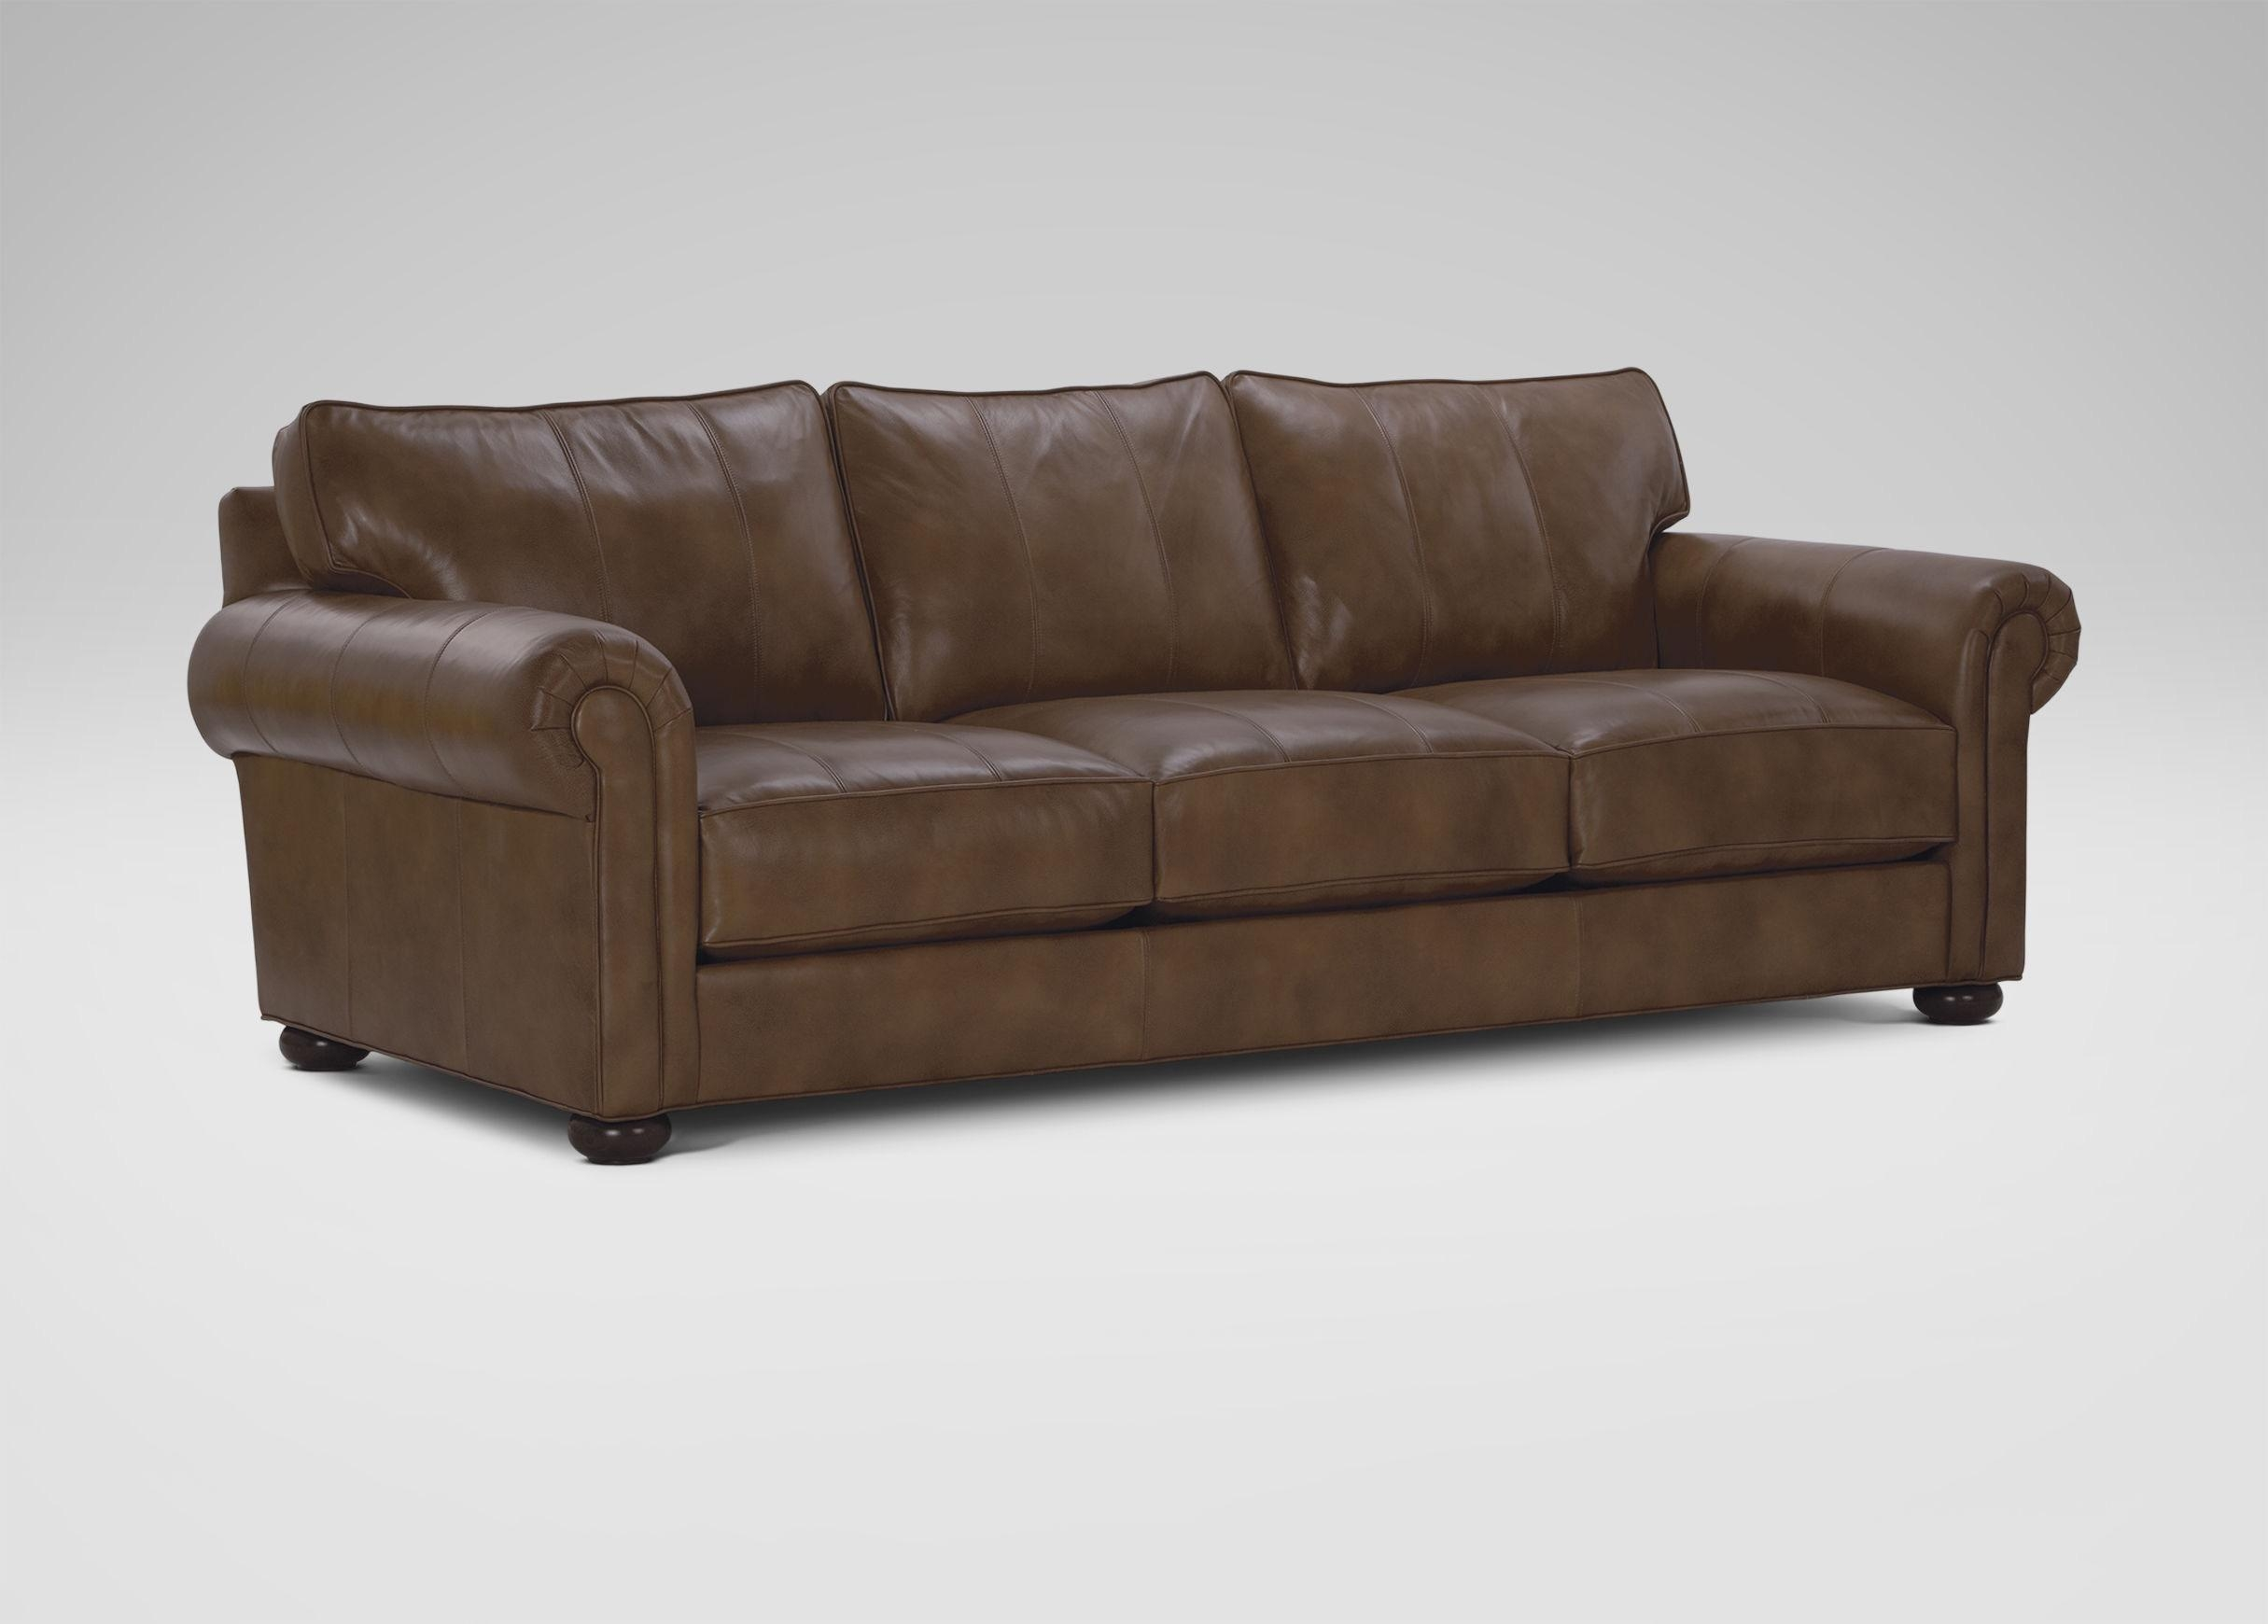 Furniture: Ethan Allen Furniture Reviews For Elegant Home With Chadwick Sofas (Image 15 of 20)